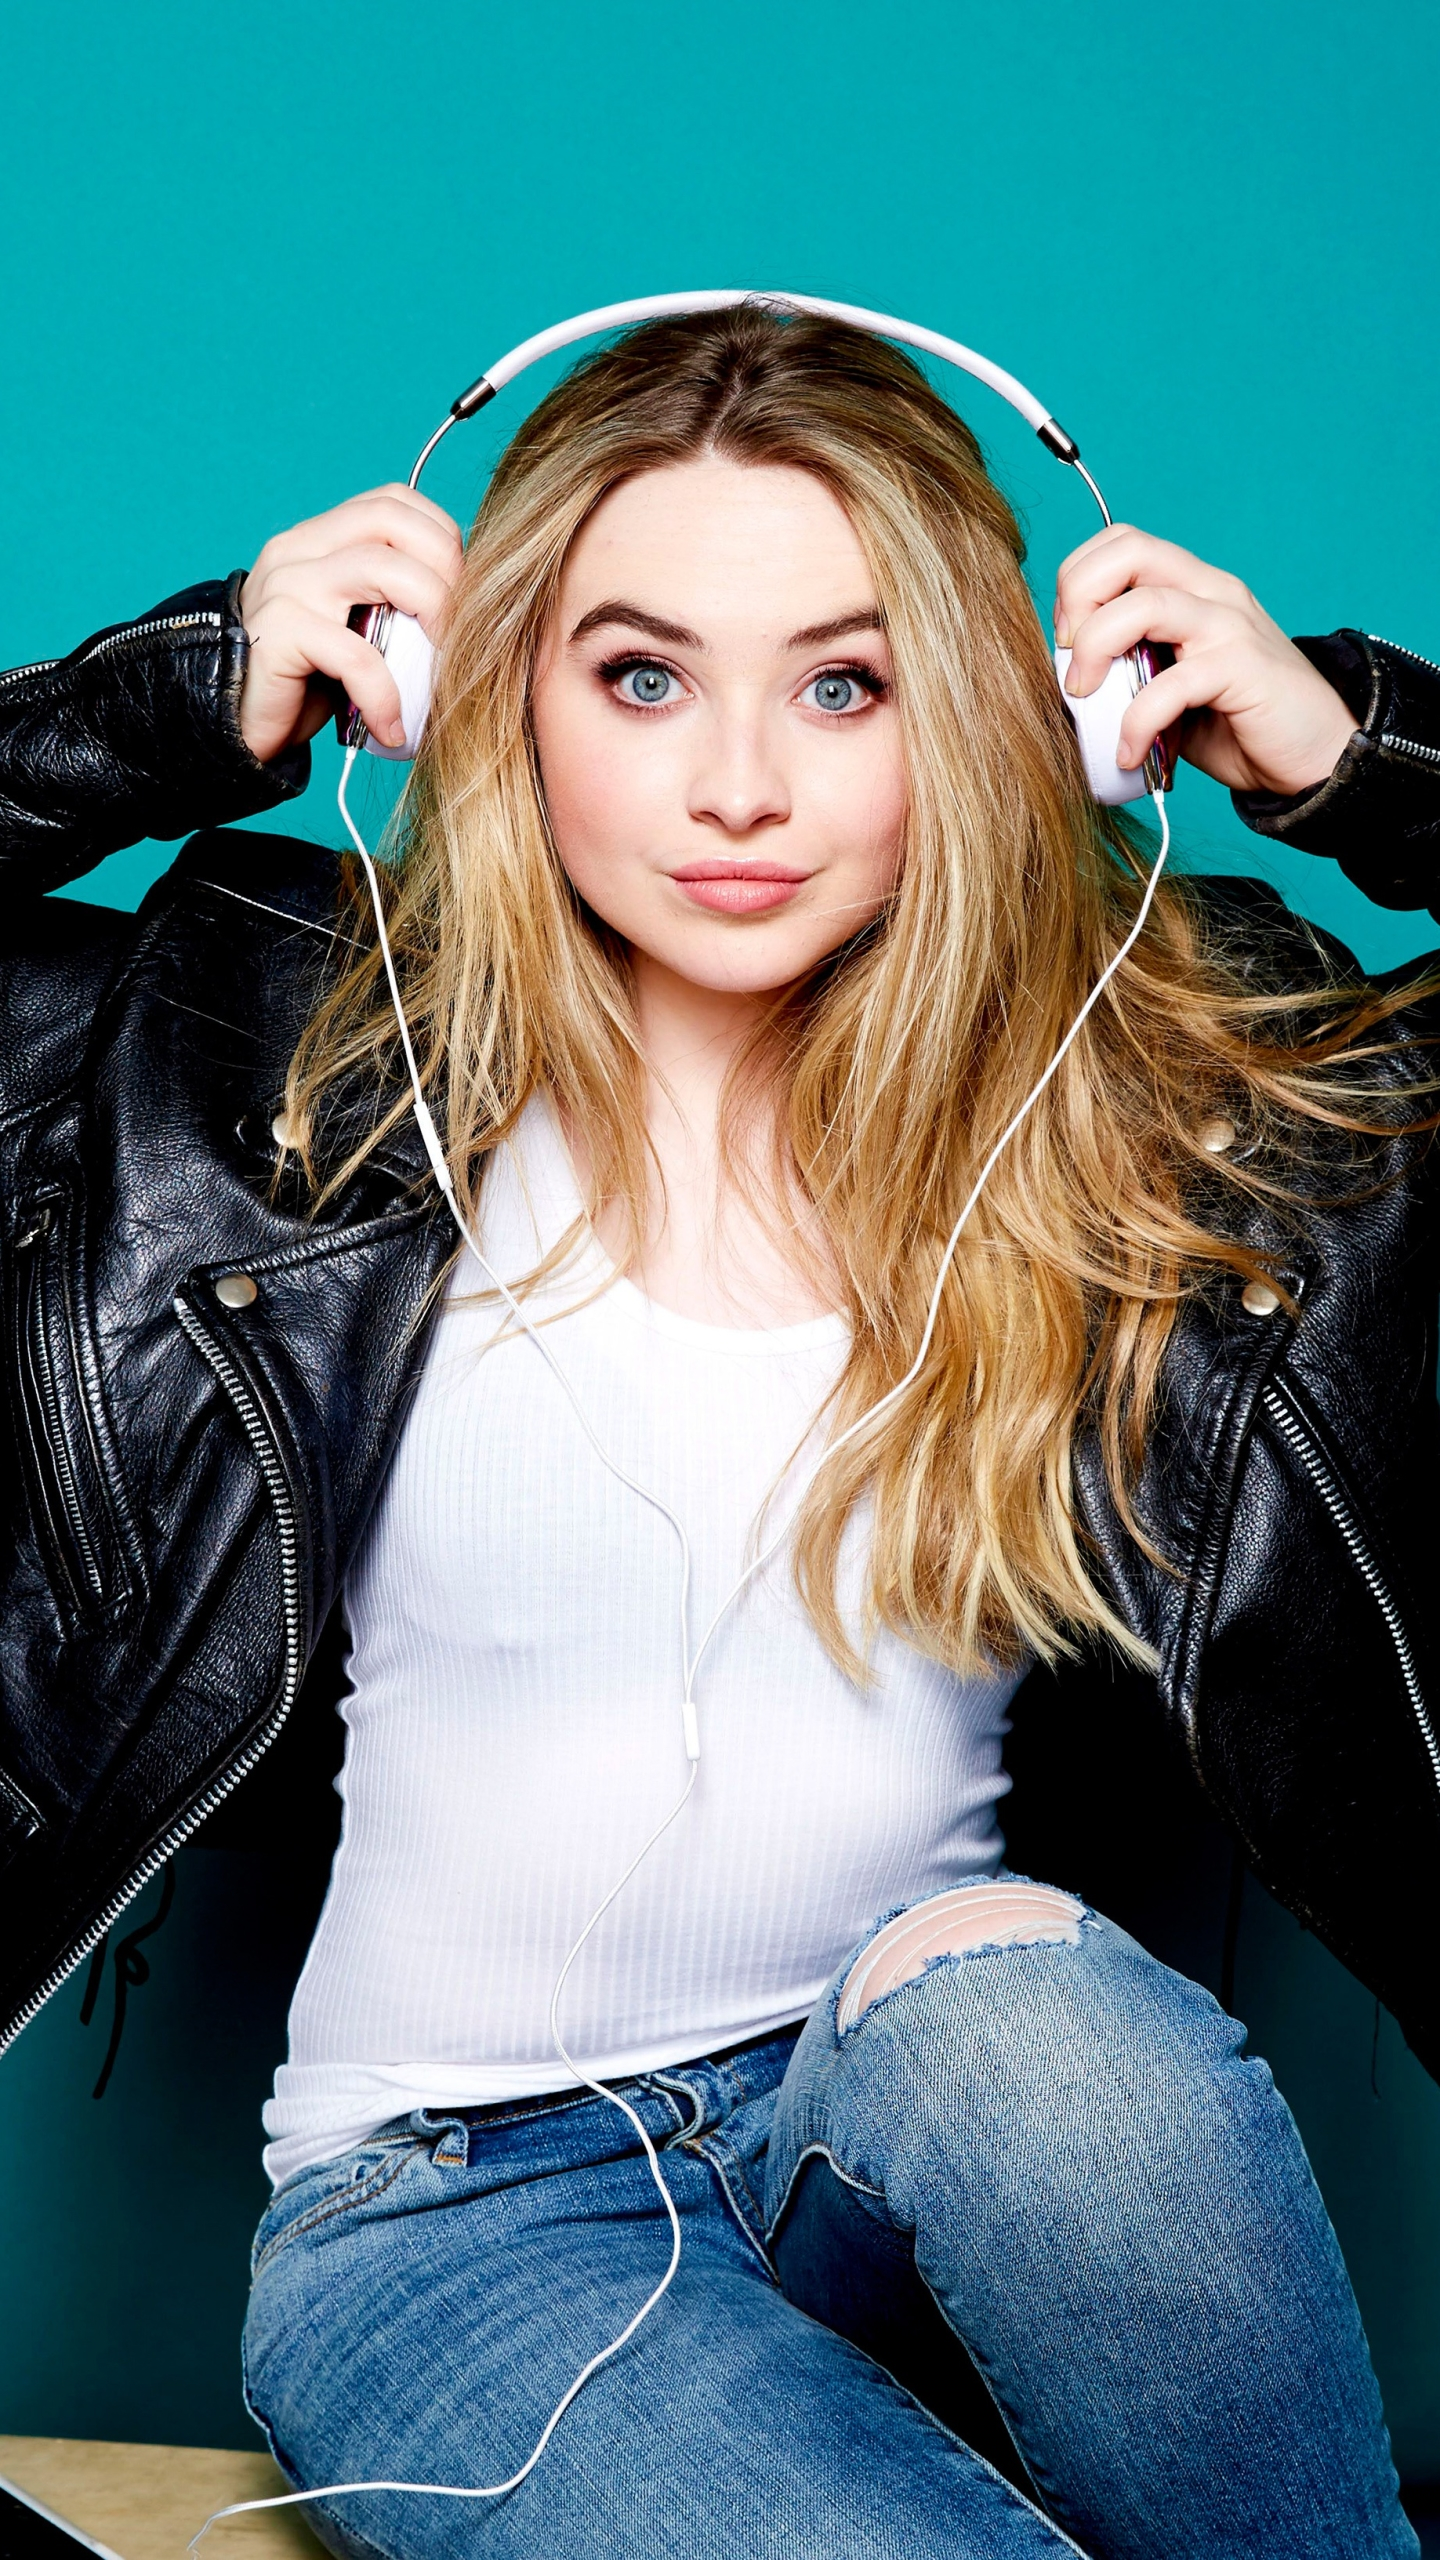 Sabrina carpenter wallpapers 52 wallpapers wallpapers - Sabrina carpenter hd wallpaper ...